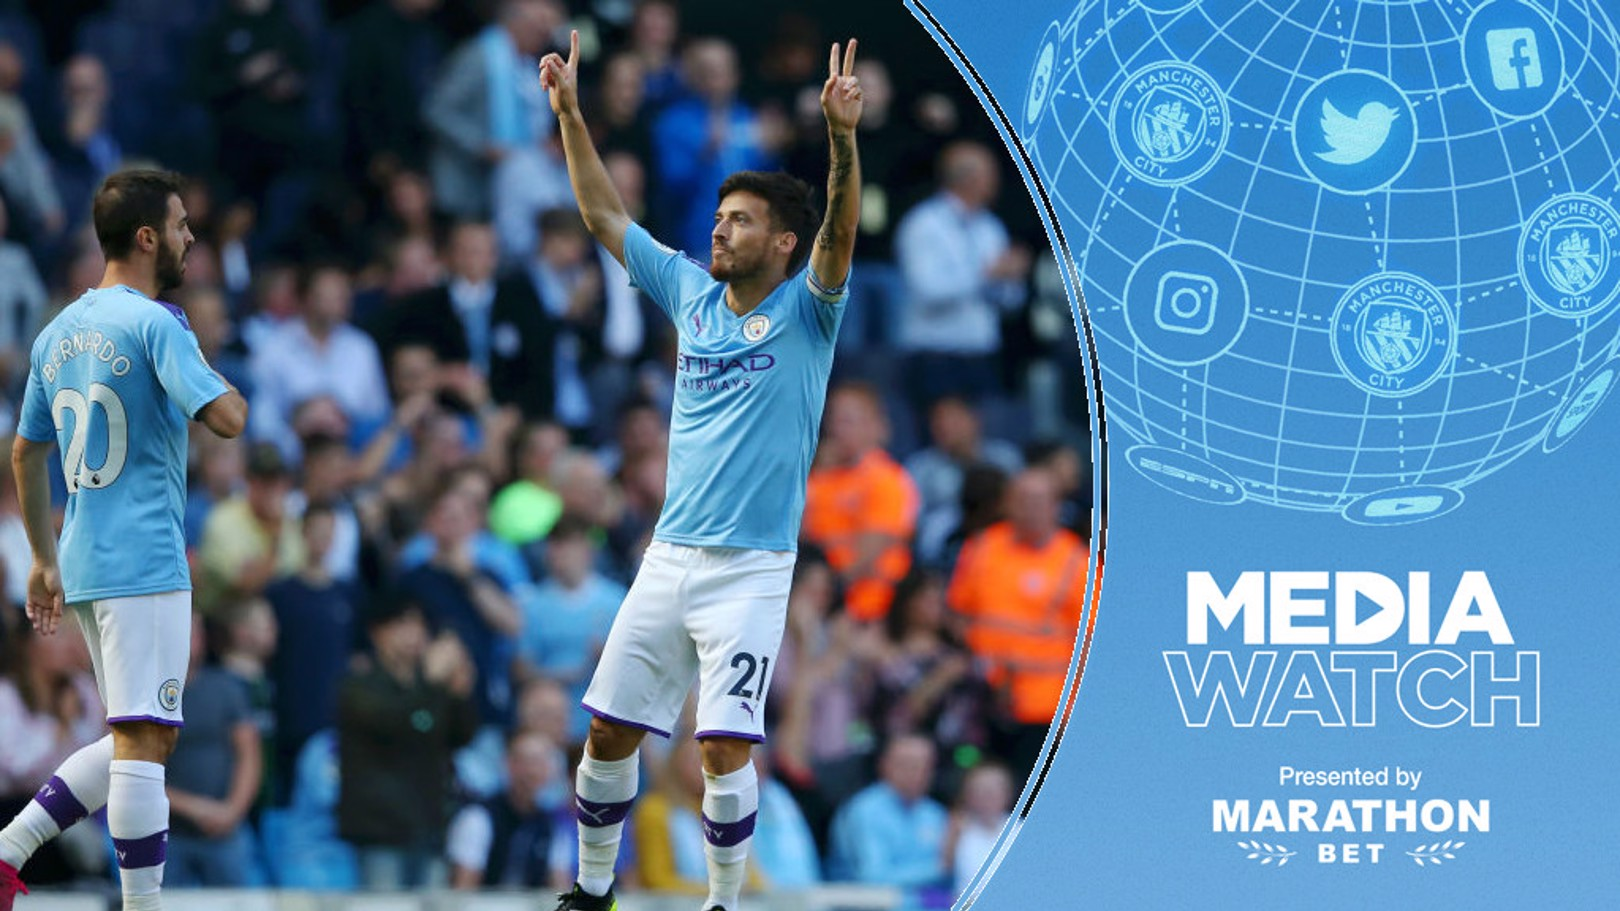 TOP DRAW: City's 8-0 win over Watford has received a glowing review in the media.